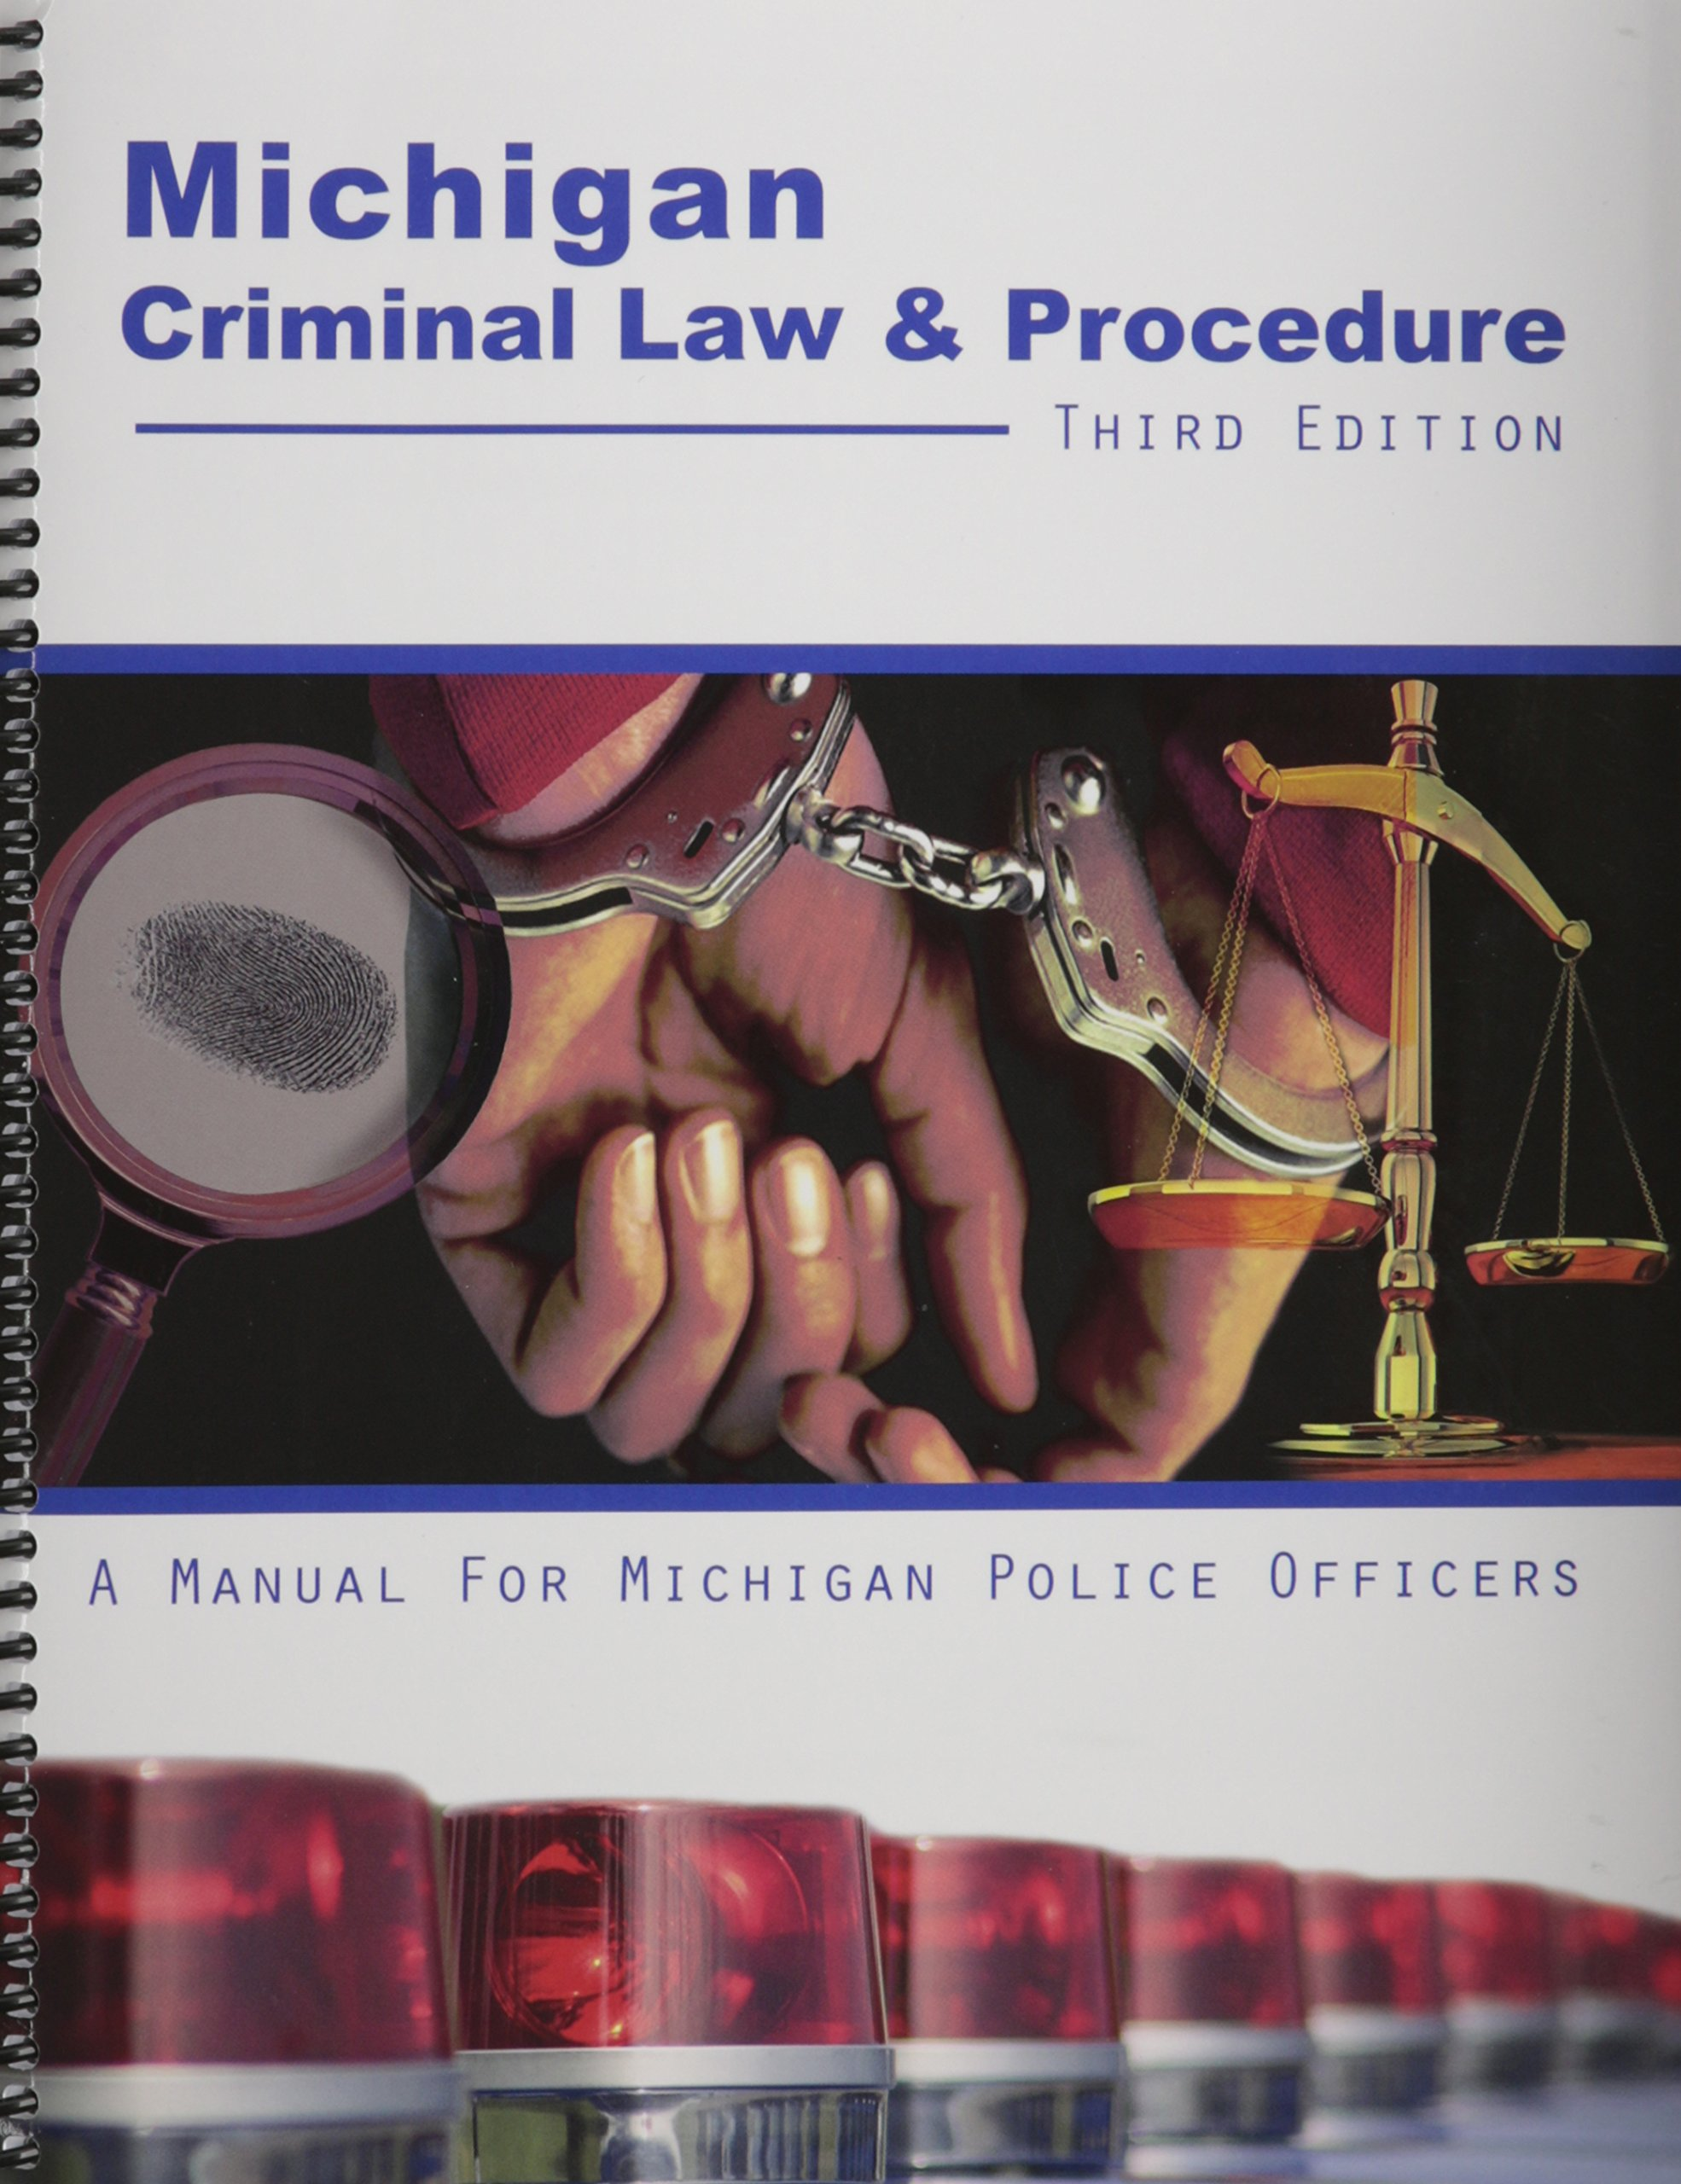 Michigan Criminal Law & Procedure: A Manual for Michigan Police Officers:  Amazon.co.uk: Michigan State Police: 9781465213747: Books